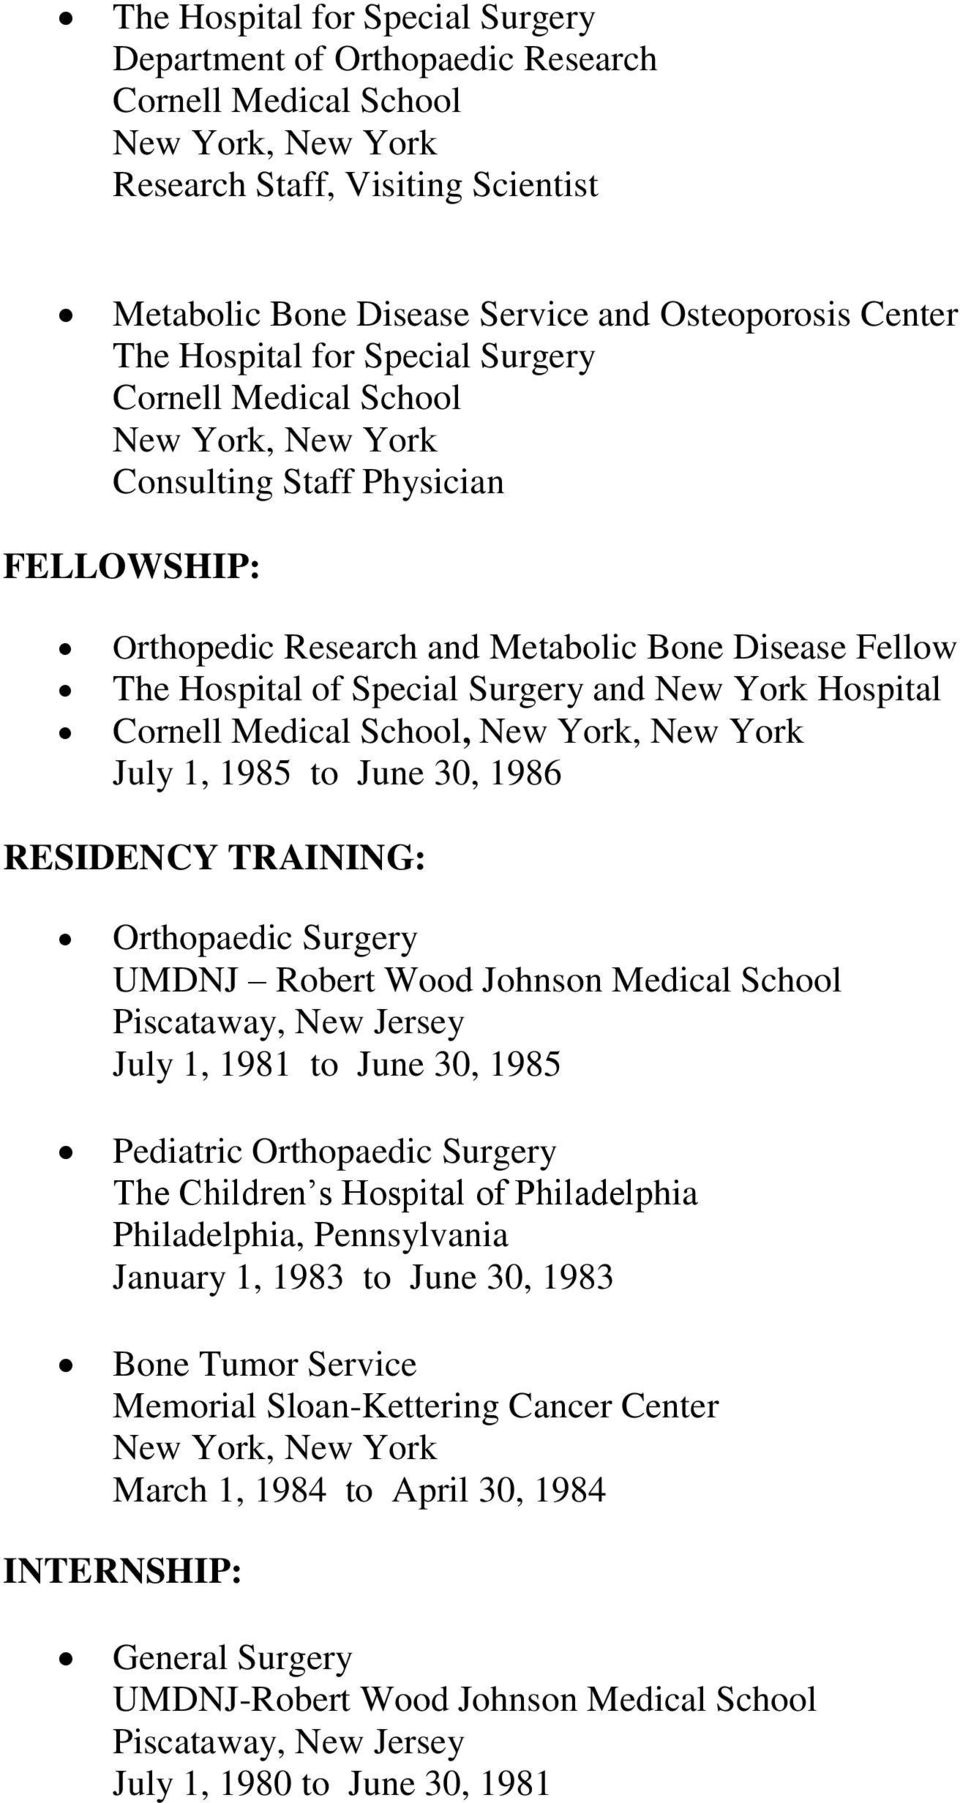 and New York Hospital Cornell Medical School, New York, New York July 1, 1985 to June 30, 1986 RESIDENCY TRAINING: Orthopaedic Surgery UMDNJ Robert Wood Johnson Medical School Piscataway, New Jersey